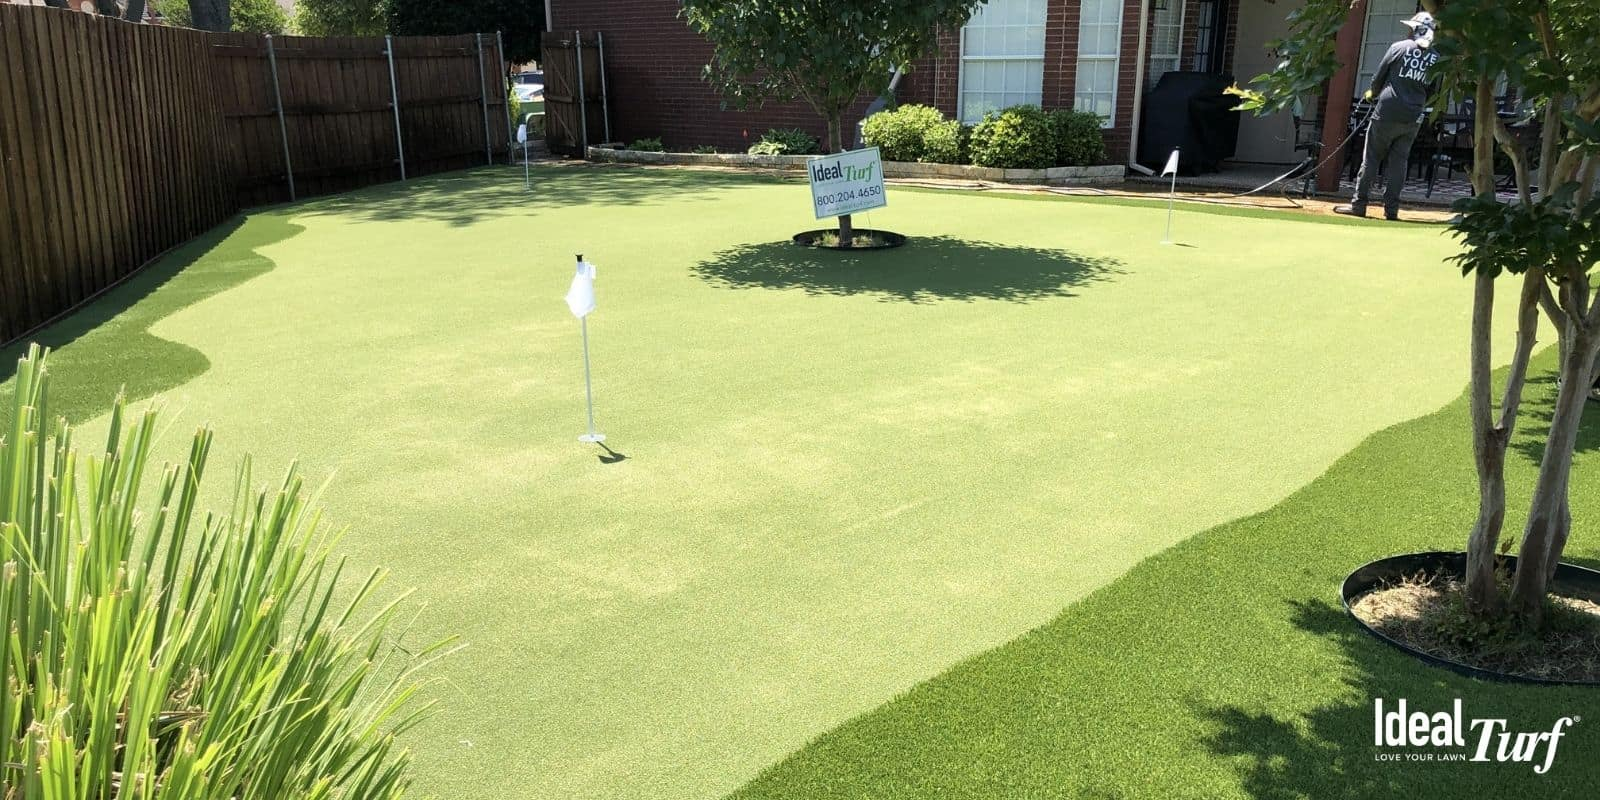 3. Elements You Can Design Into Backyard Putting Greens